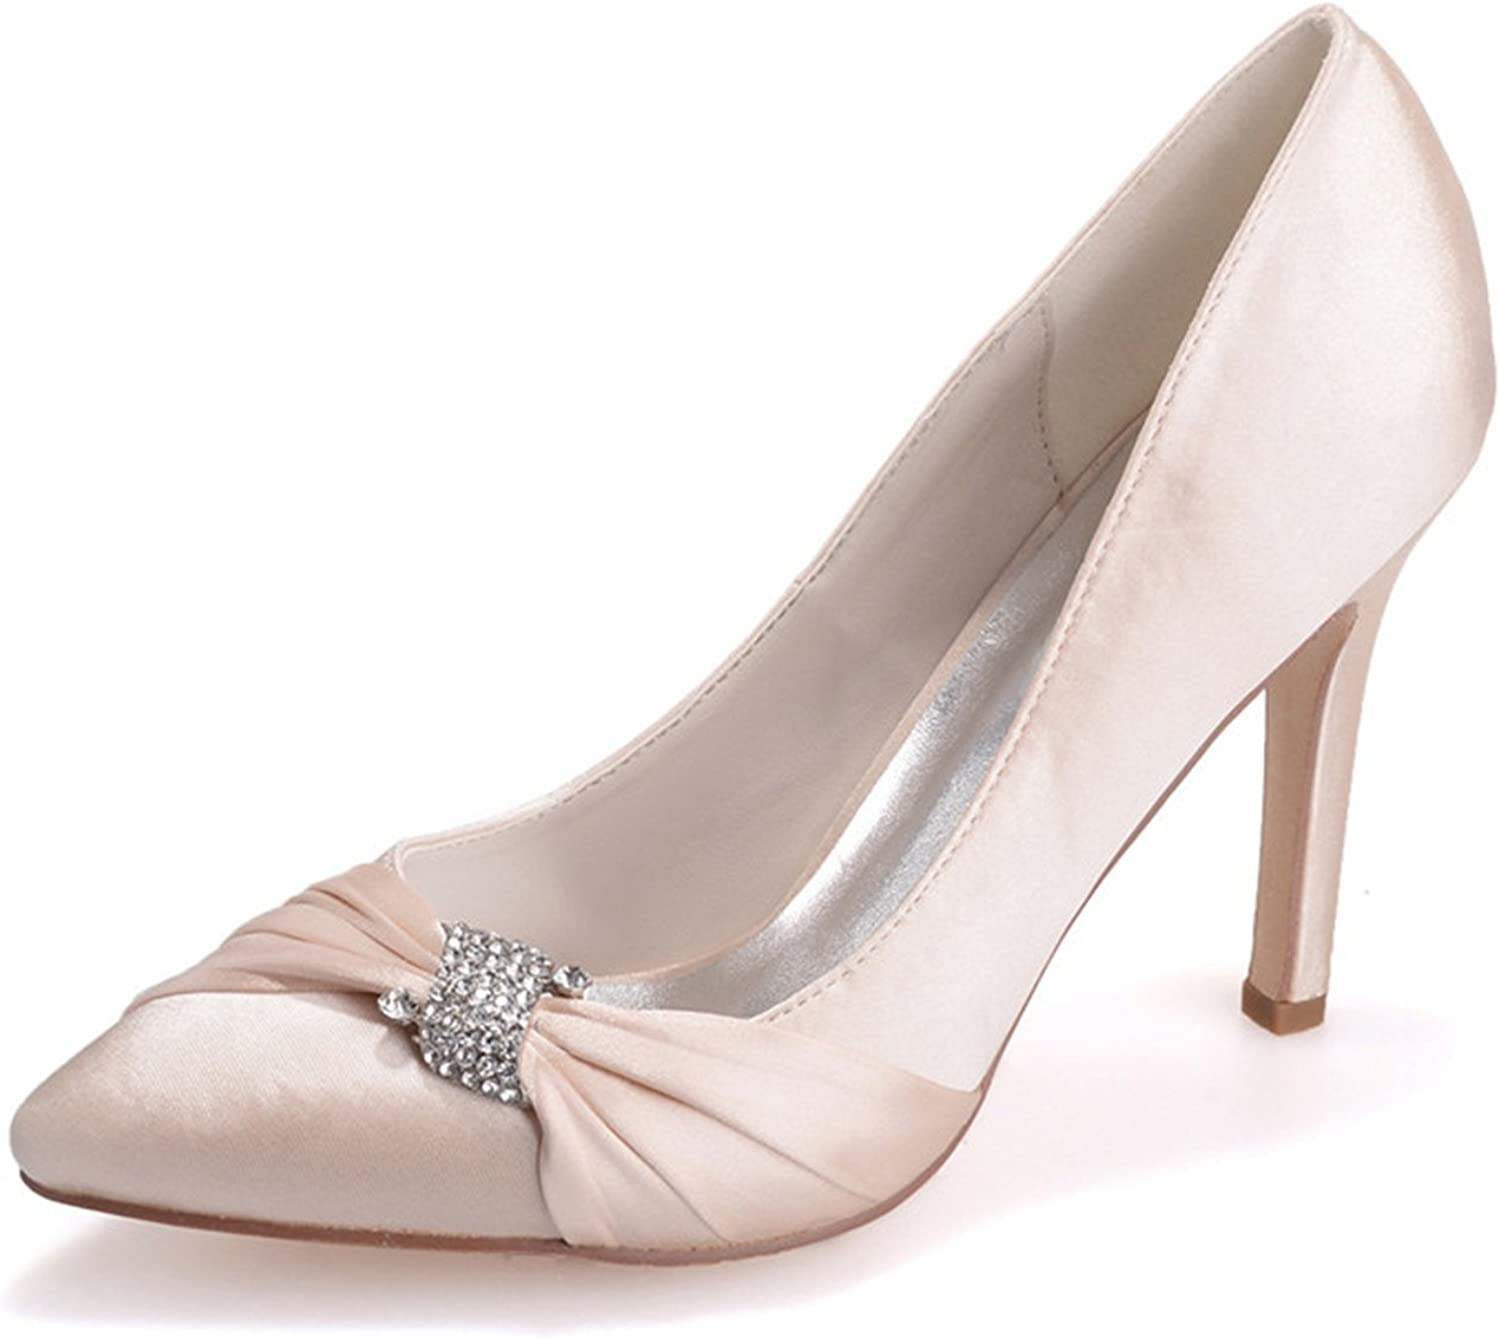 Sarahbridal Women's Pointed Toe High Heel Satin Wedding Prom Evening Pumps ZXF0608-23